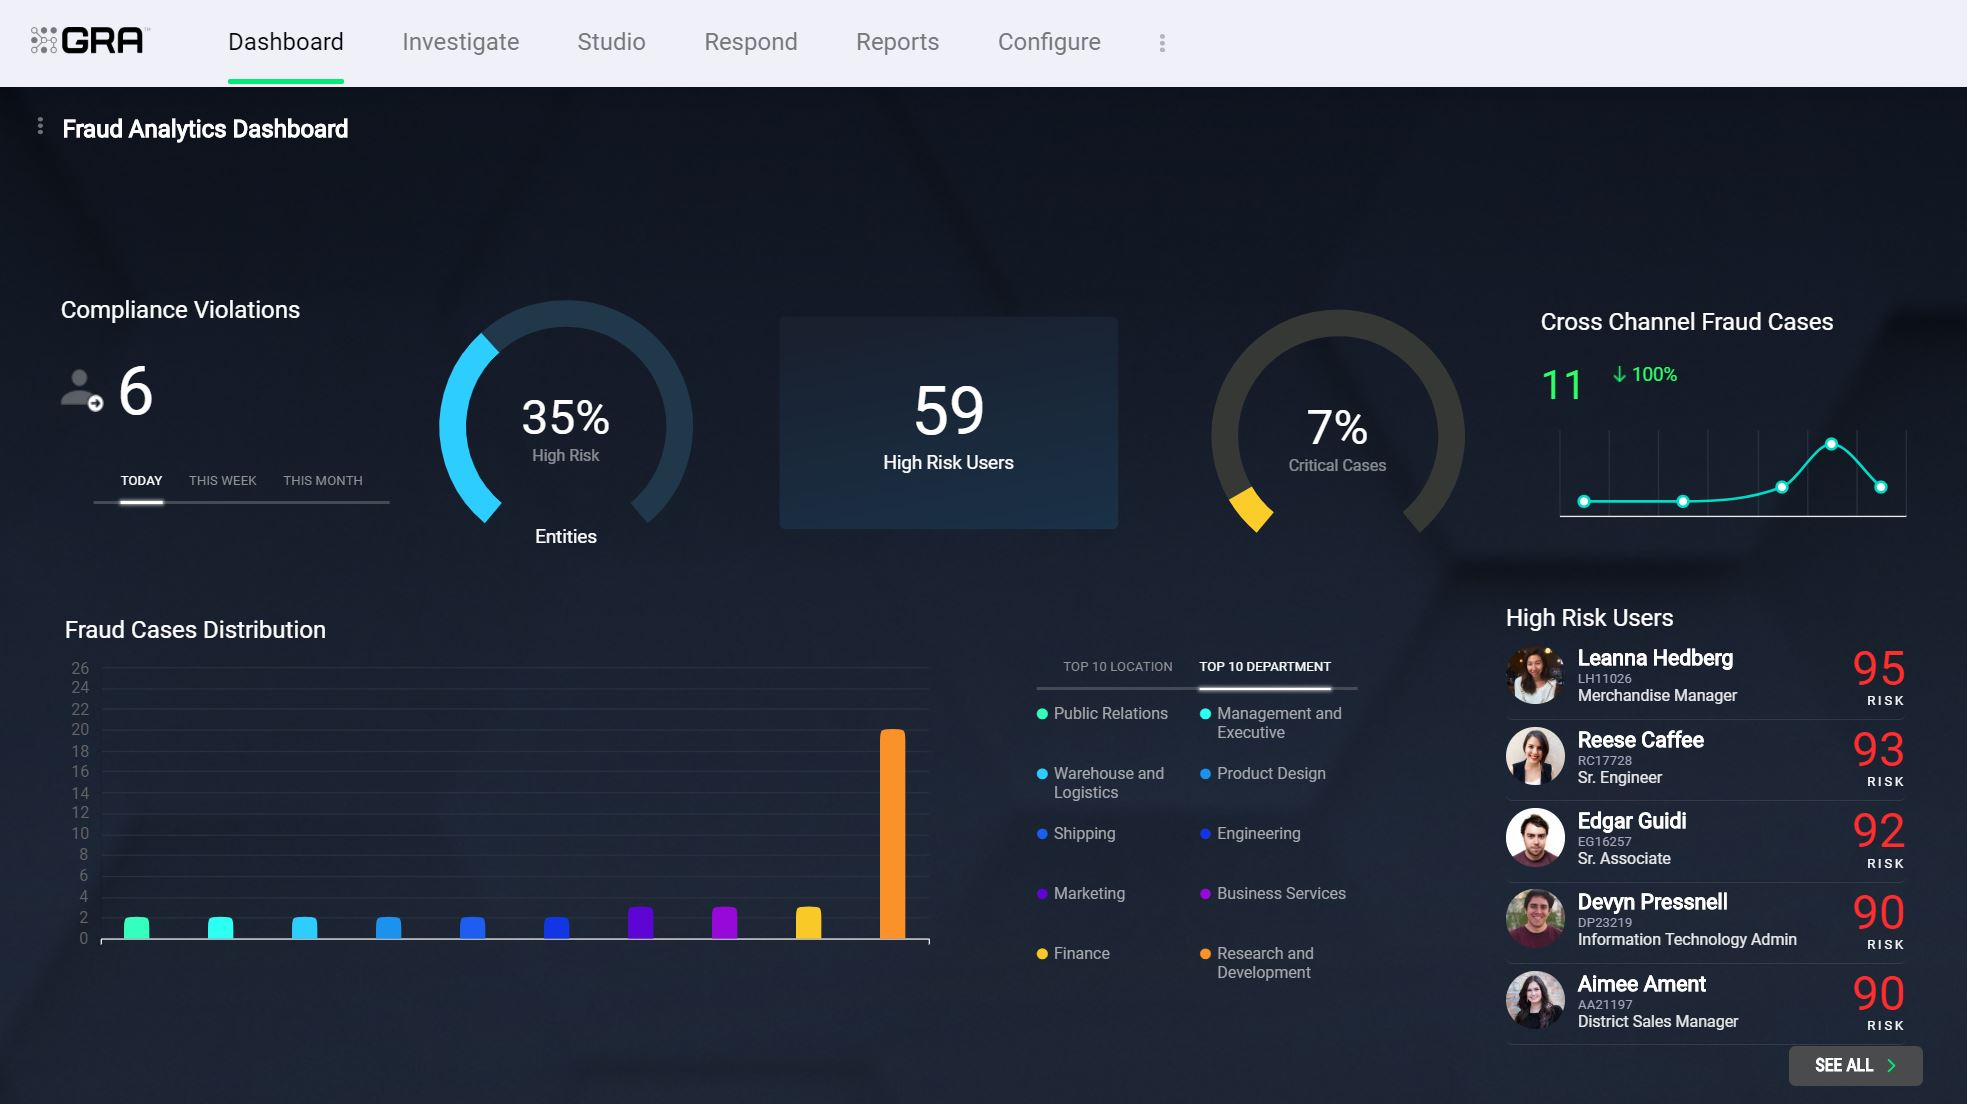 Fraud Analytics Dashboard